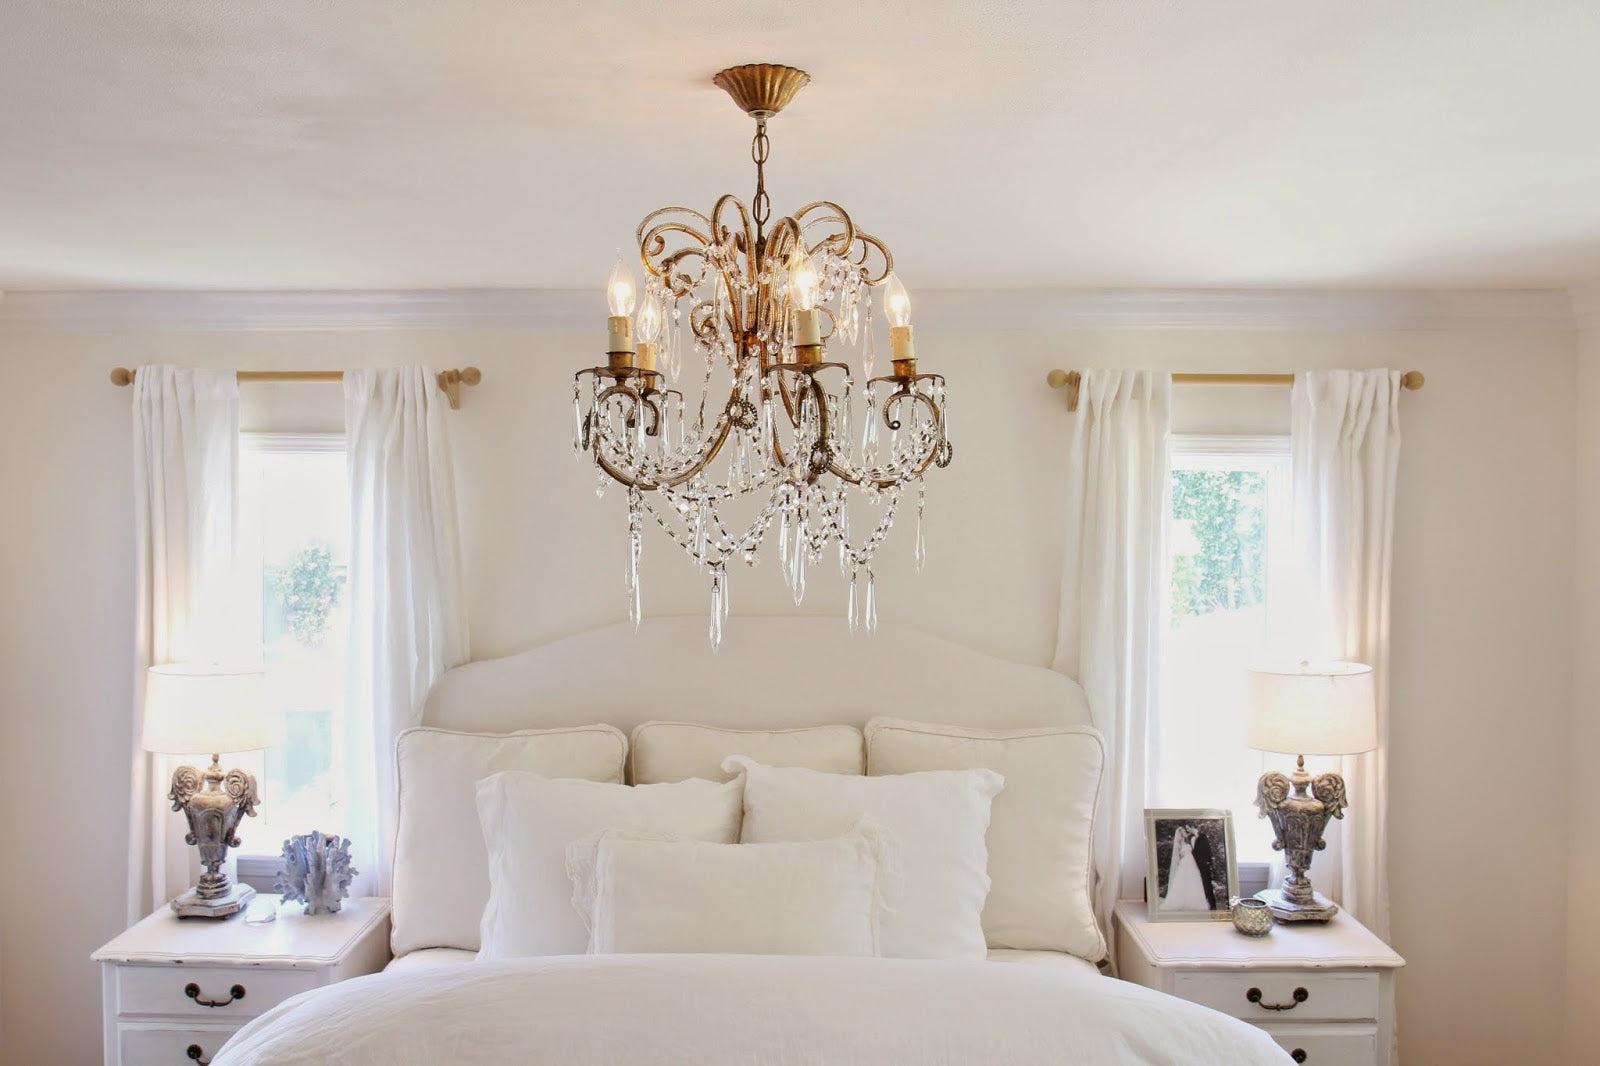 Inspiring ideas for bedroom chandeliers